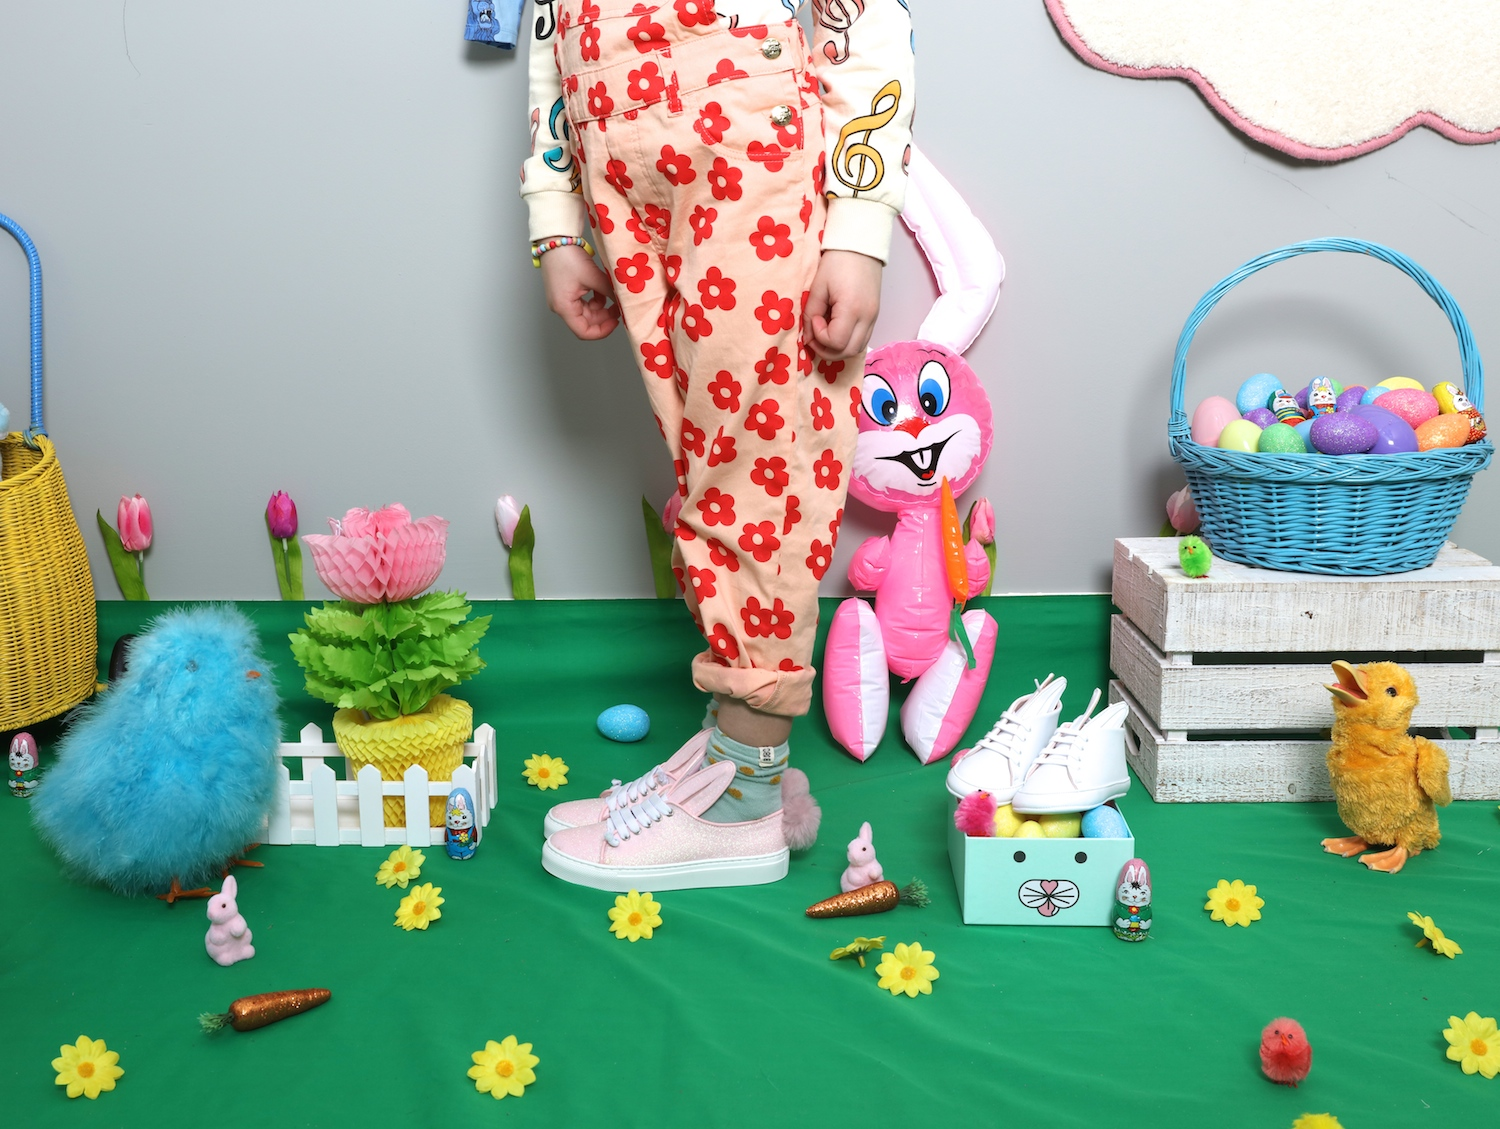 minna_parikka_children_salon_mini_rodini_dungrees_easter_bunny